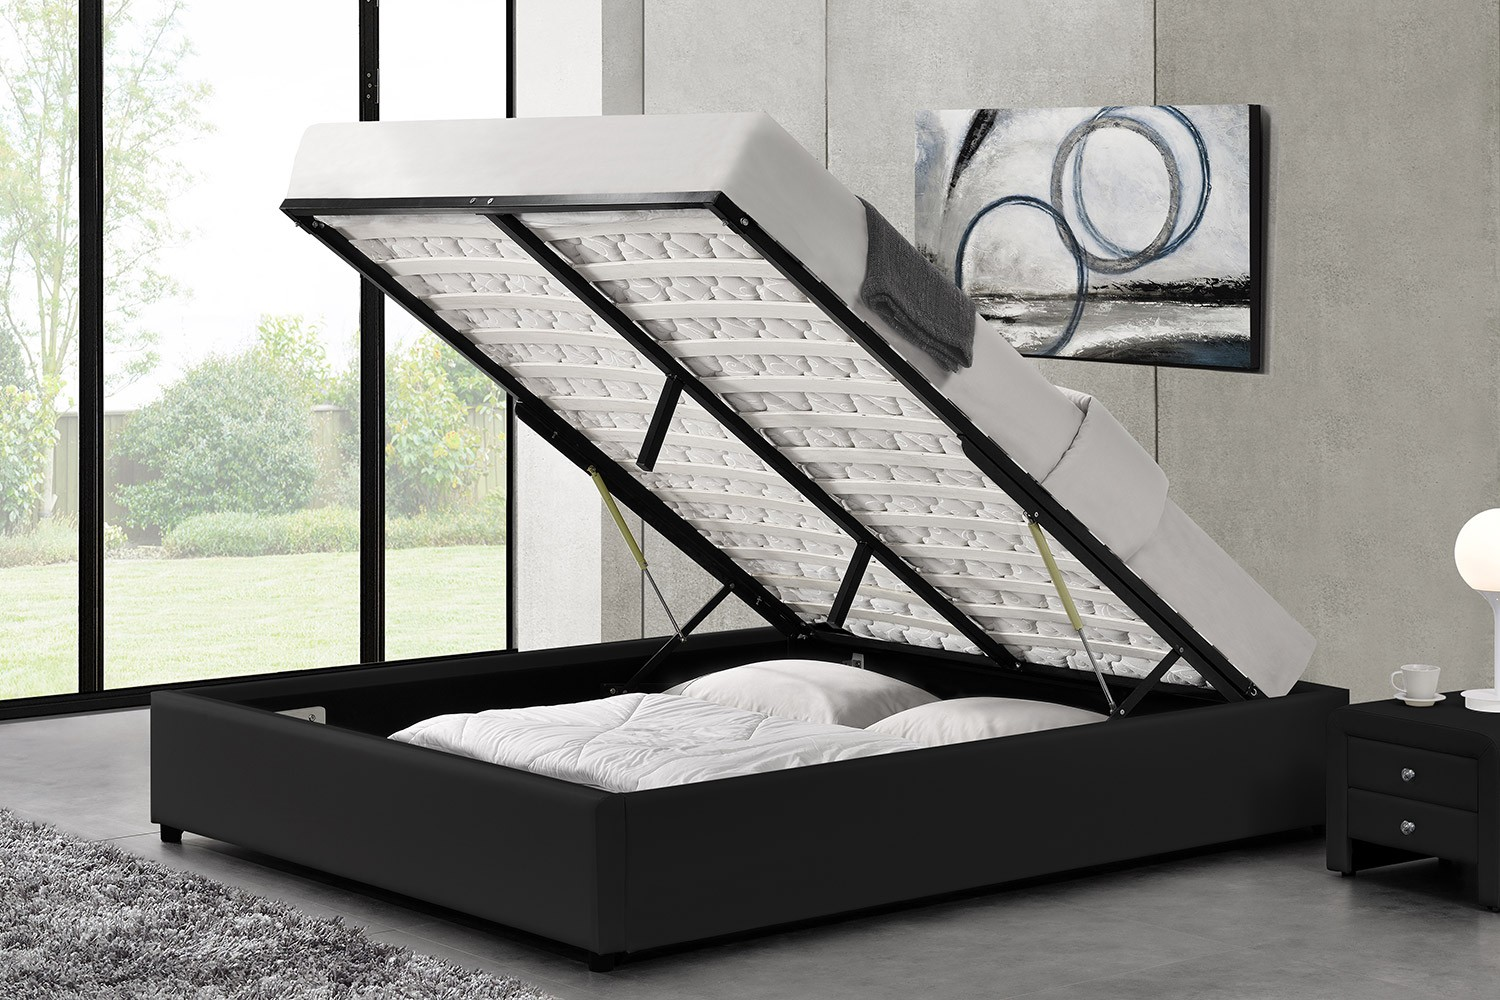 lit oakley structure de lit noir avec coffre de rangement int gr 160x200 cm. Black Bedroom Furniture Sets. Home Design Ideas